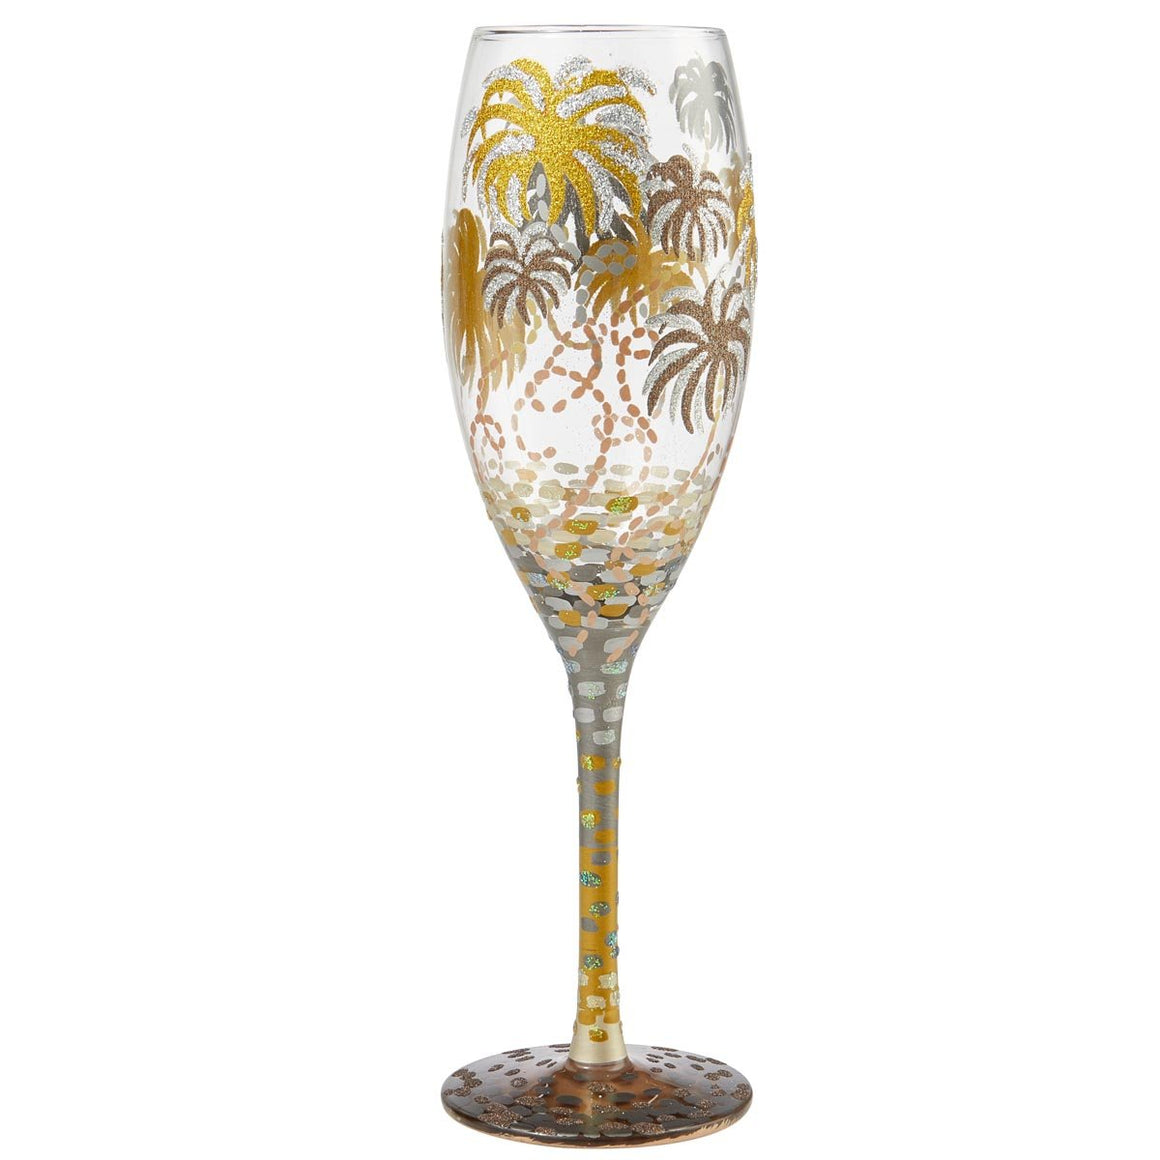 Let's Celebrate Prosecco Glass by Lolita